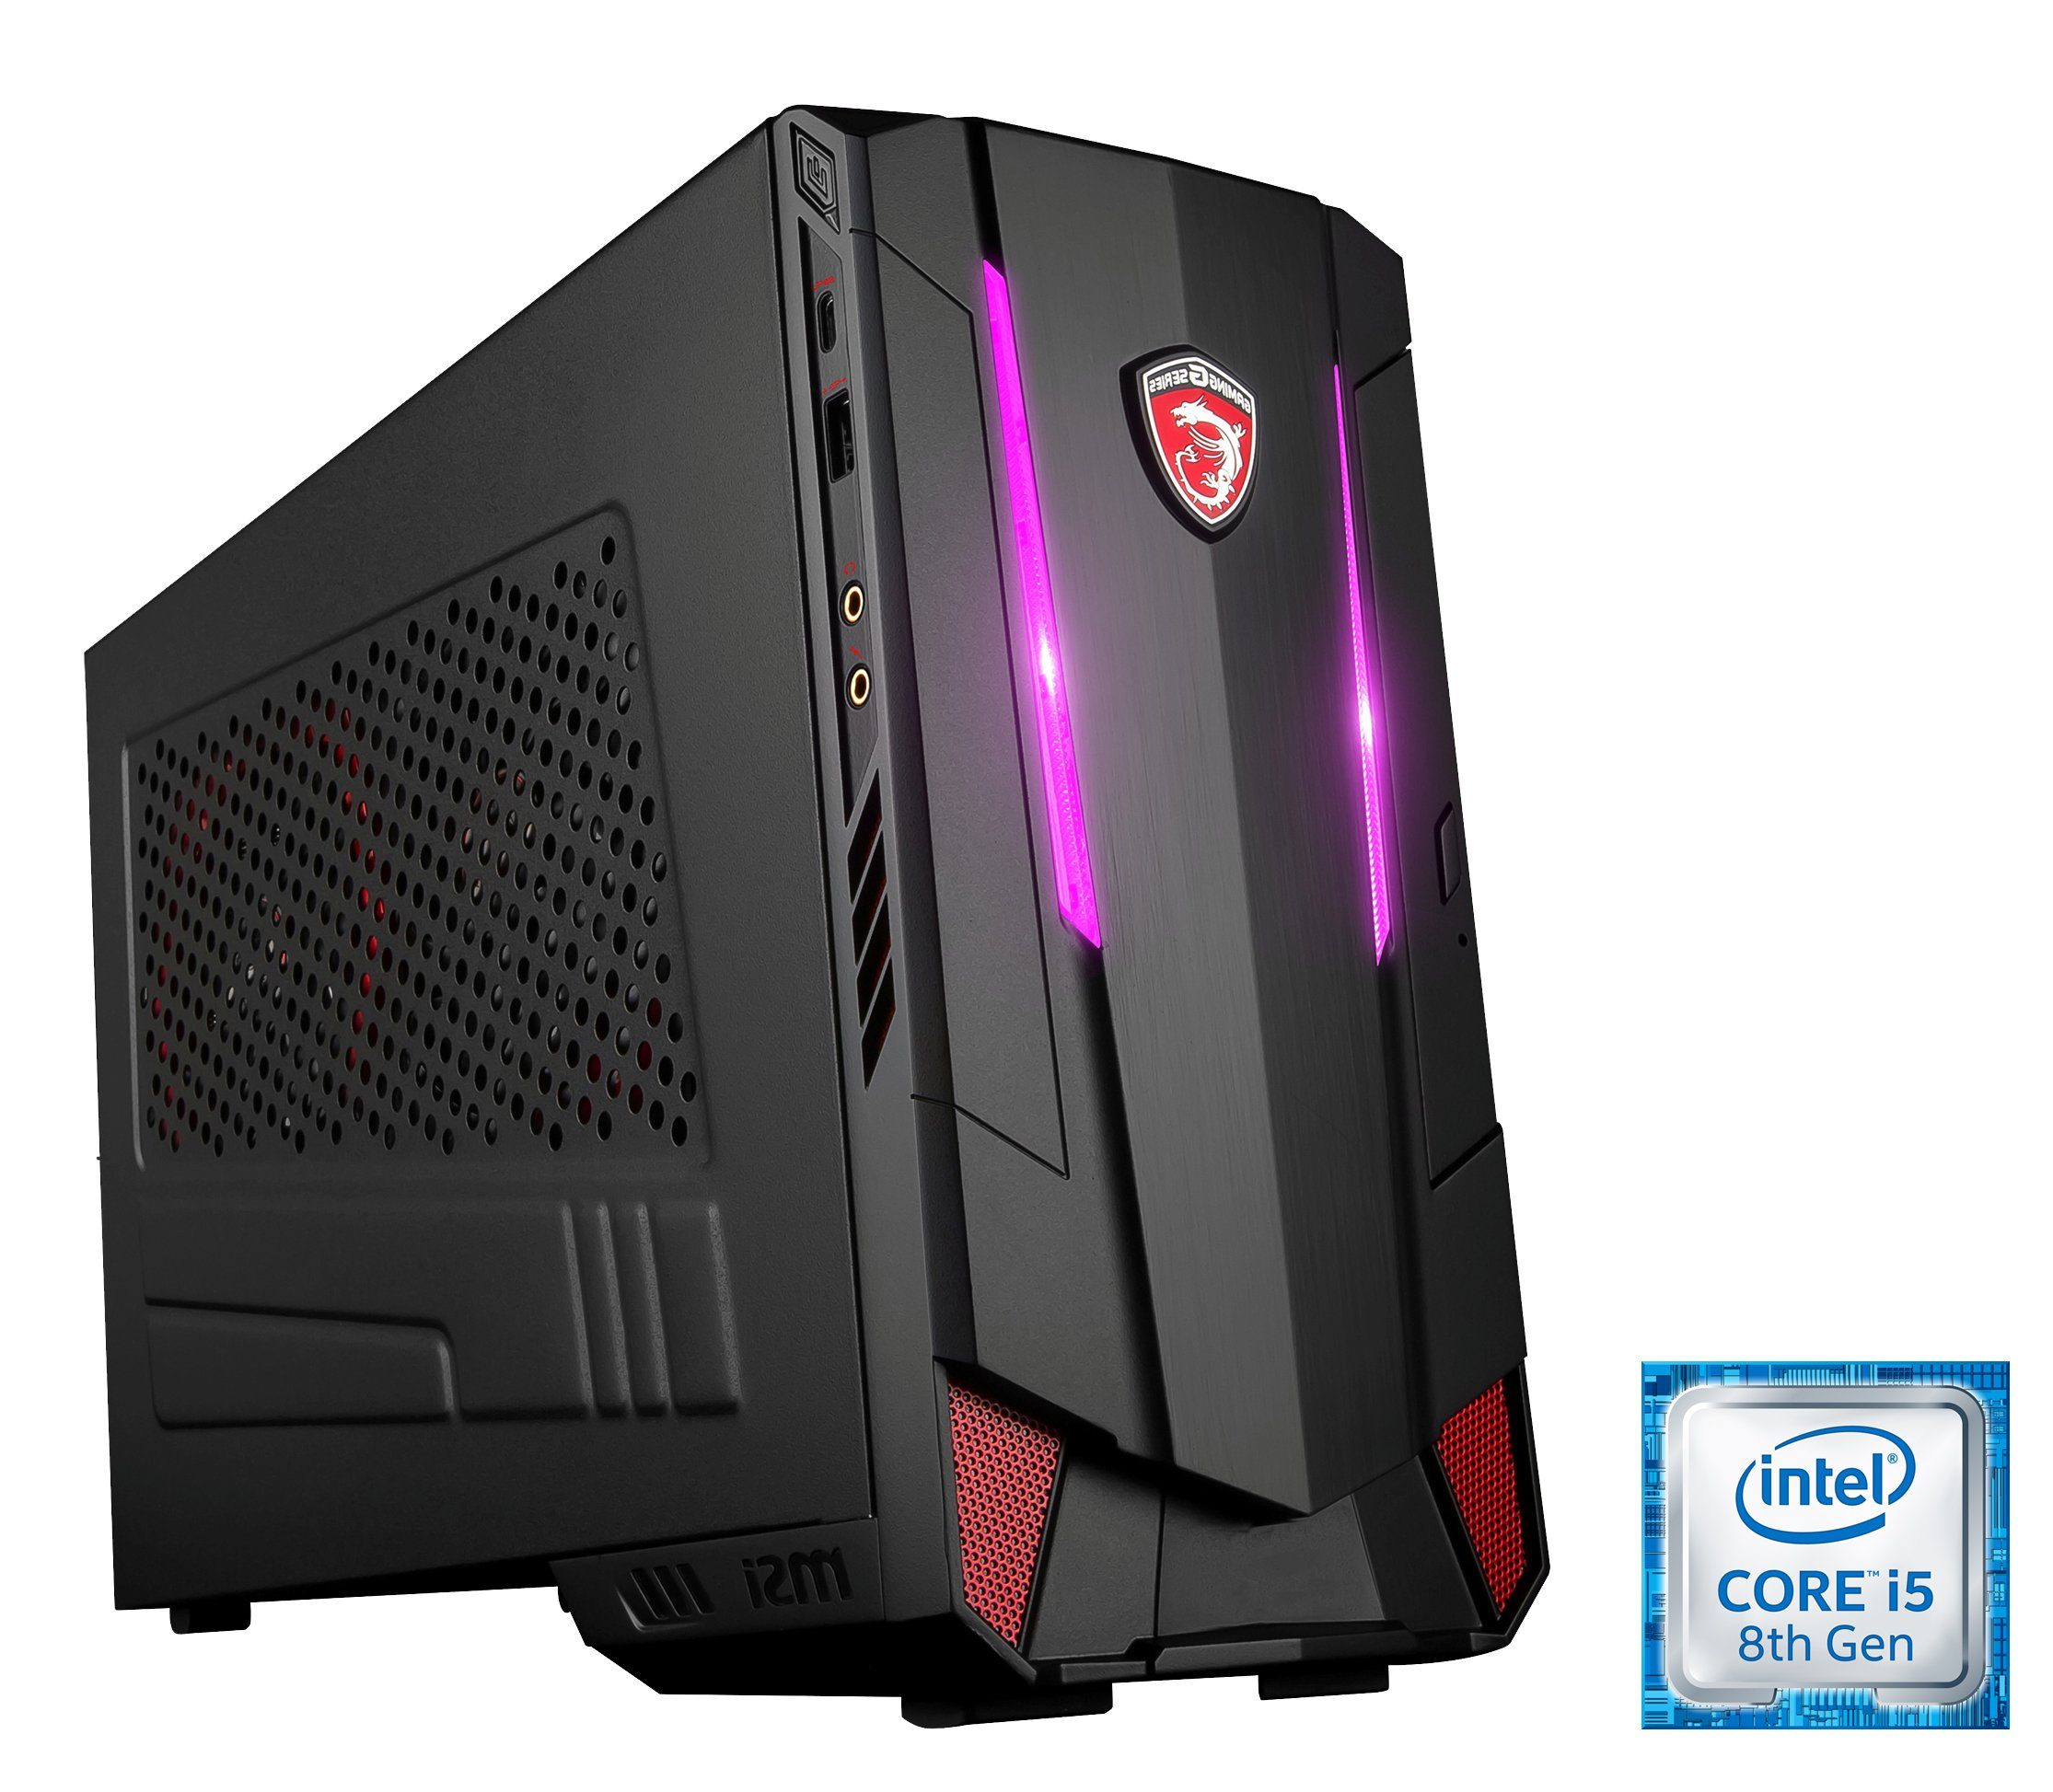 MSI Gaming PC Intel® i5-8400 8GB SSD + HDD GeForce® GTX 1060 »Nightblade MI3 8RC-061DE«